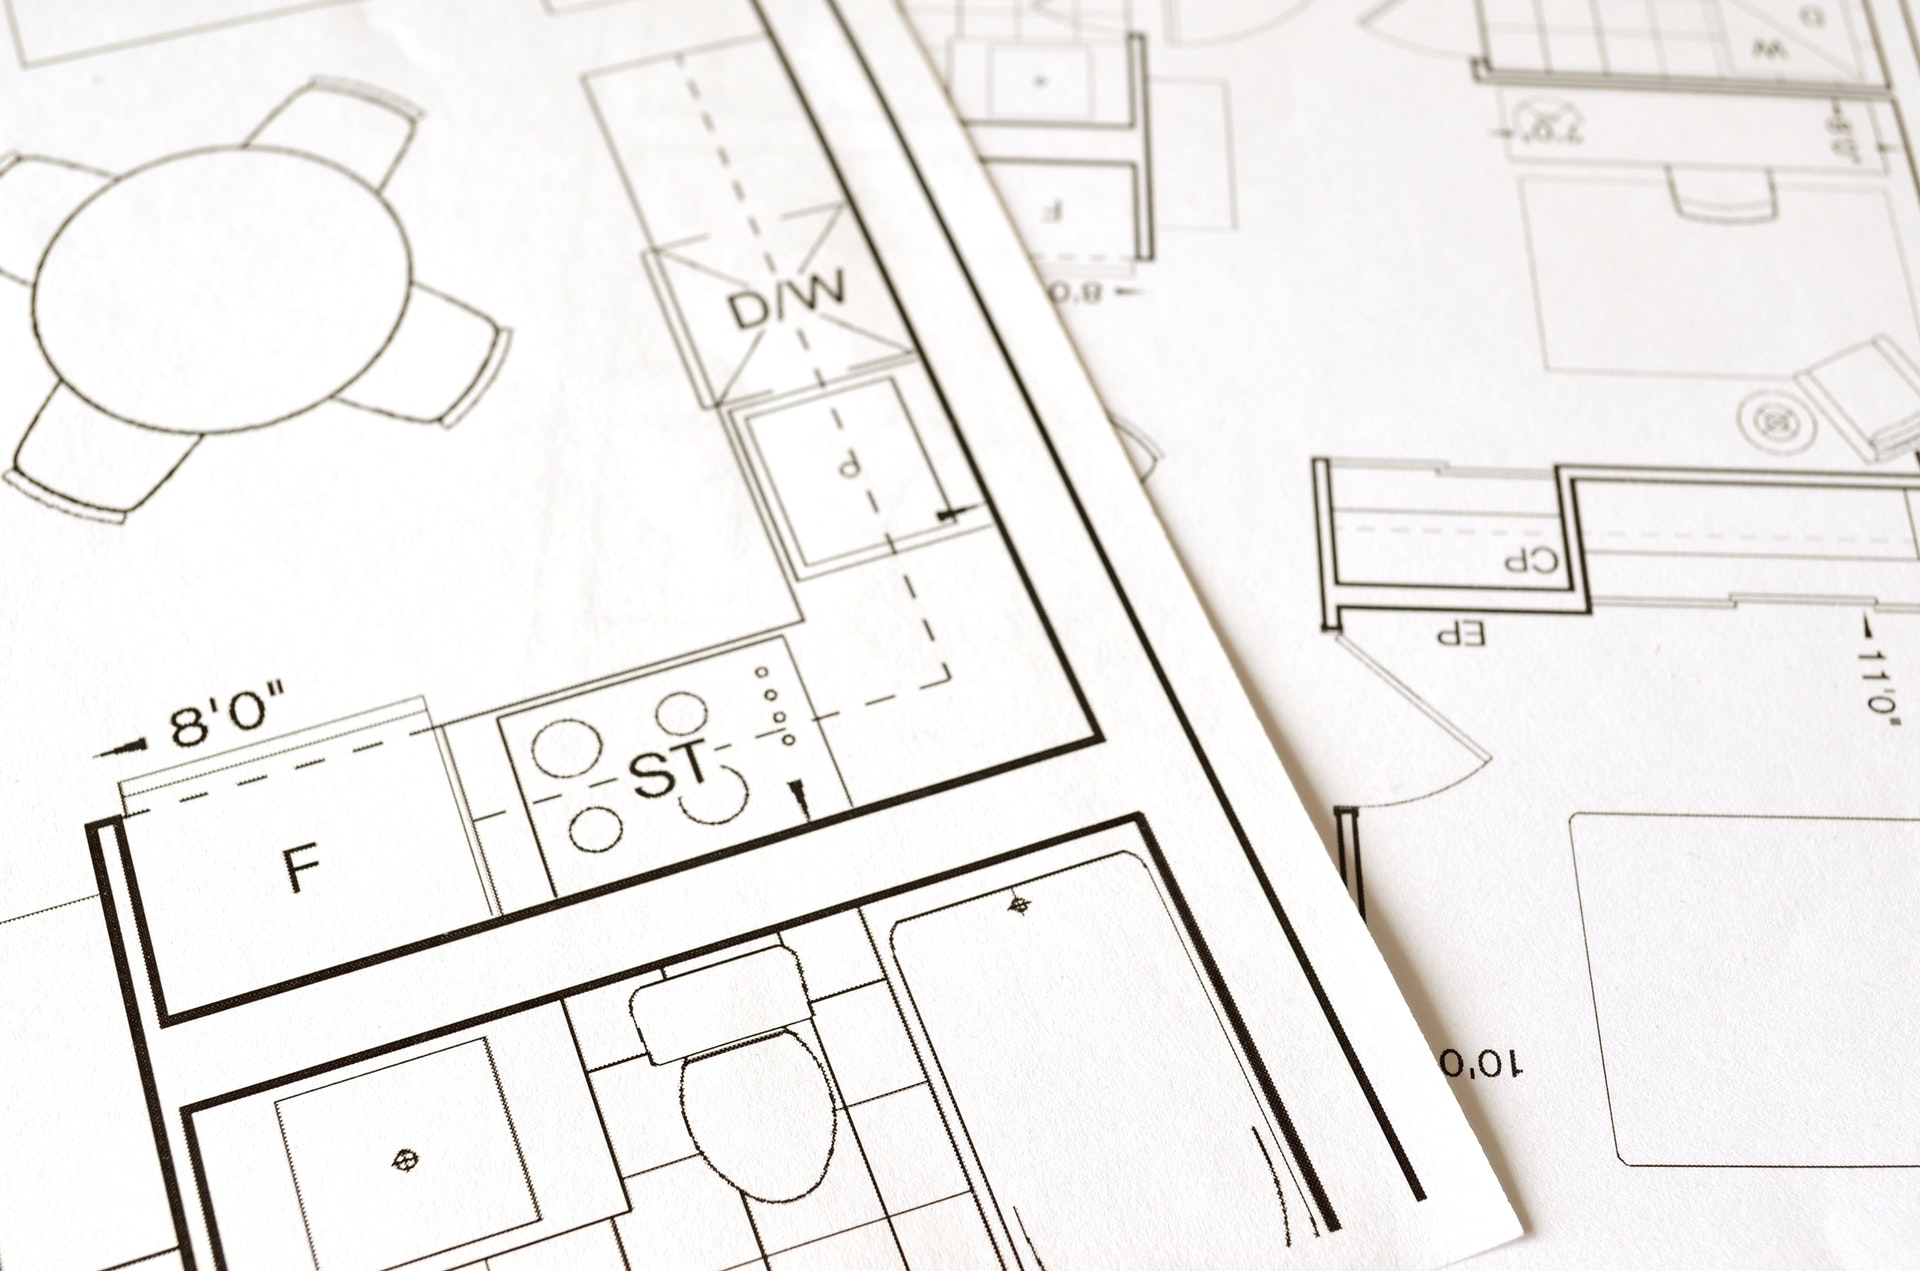 an image of construction plans